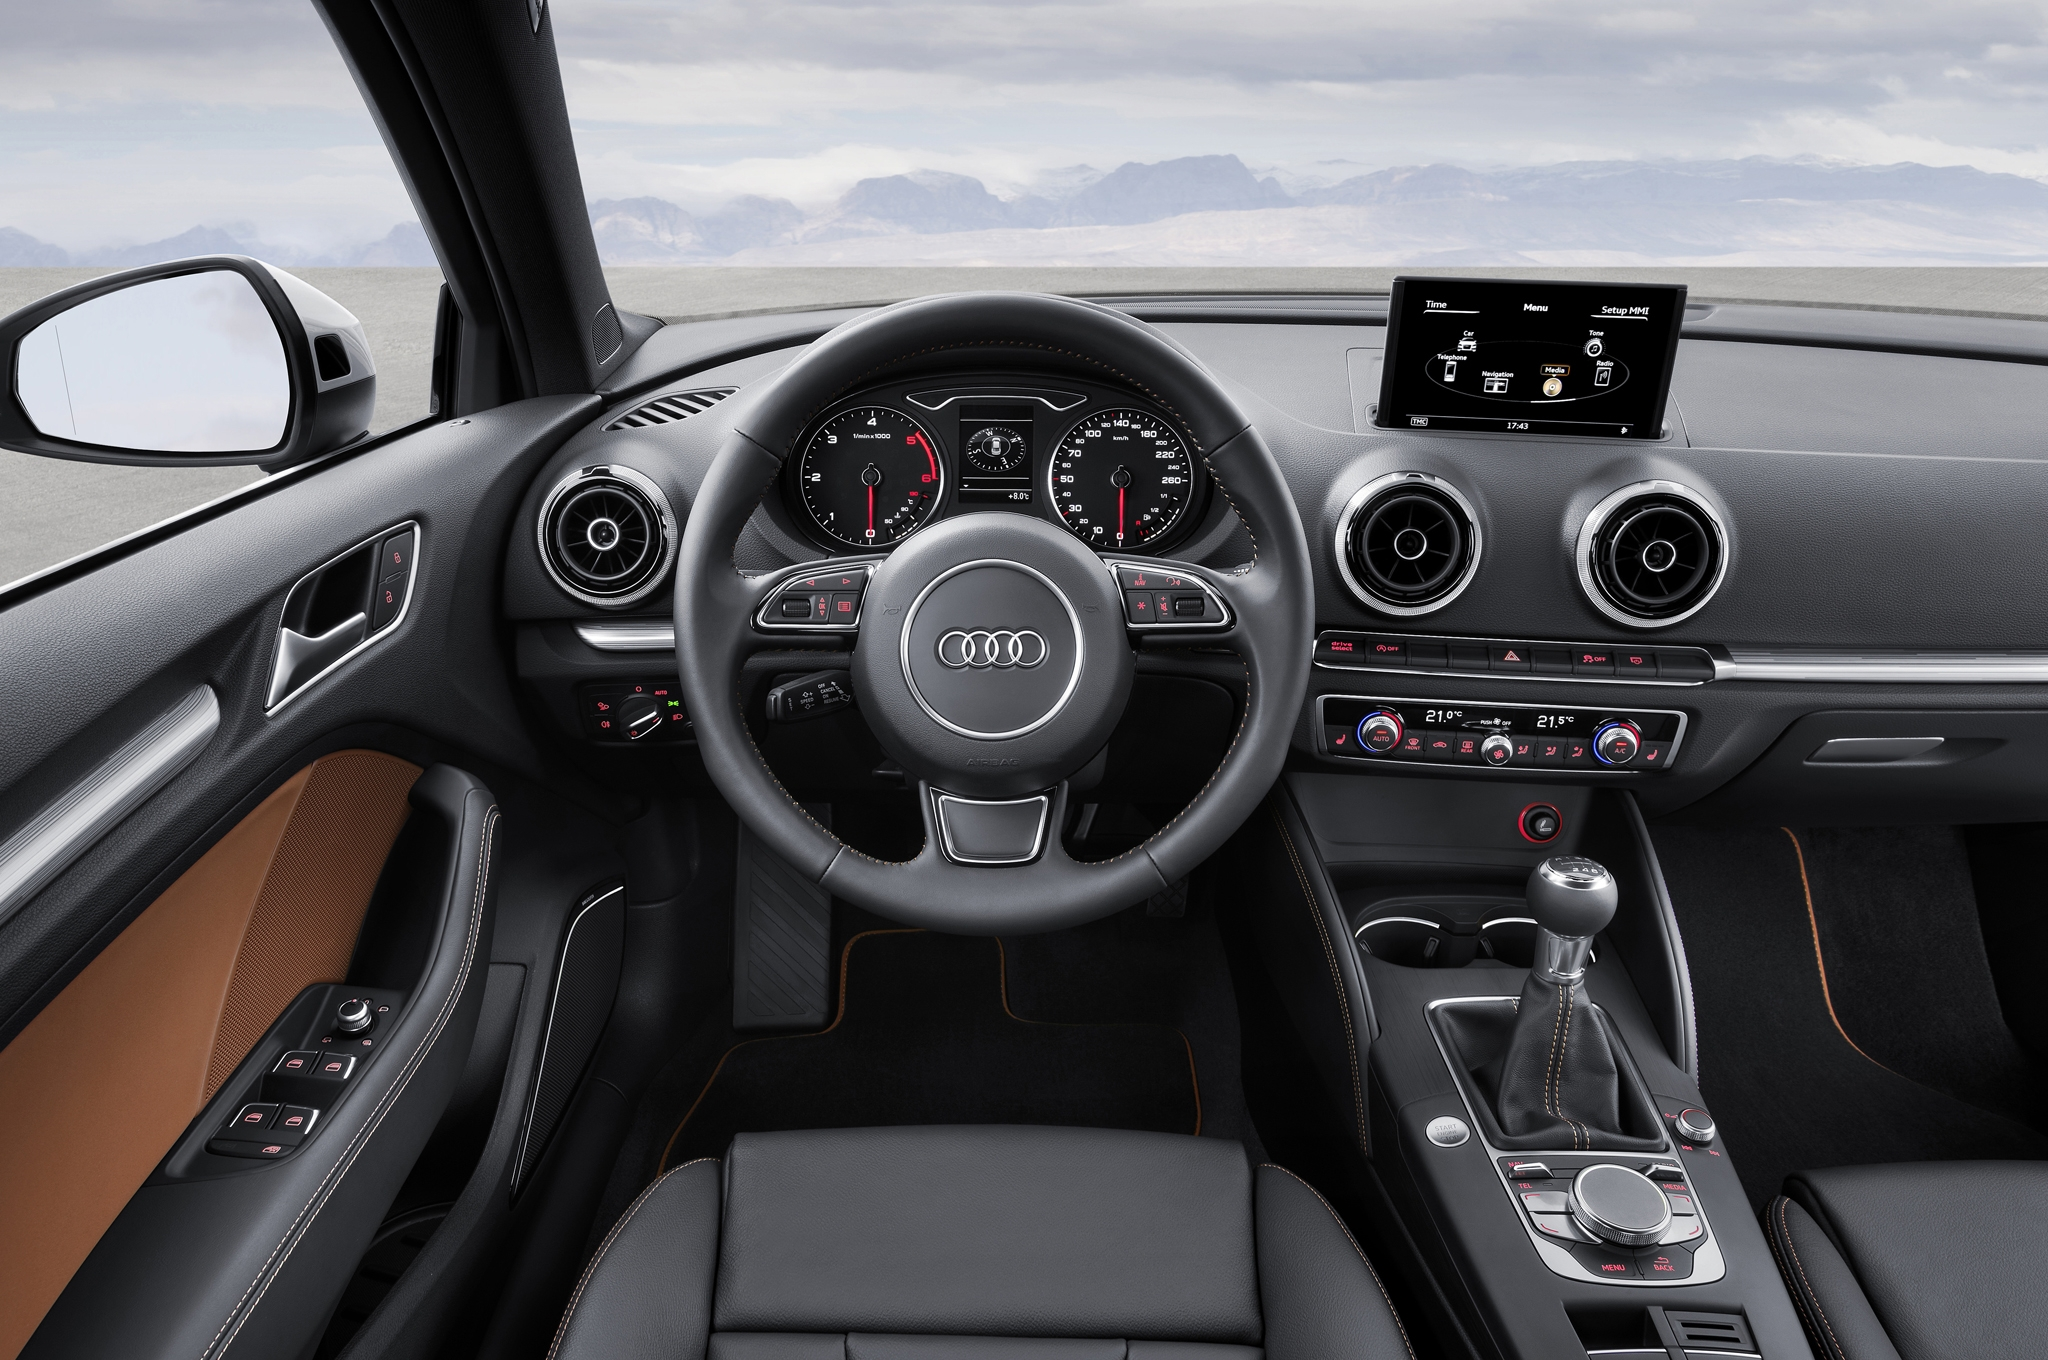 2015 Audi S3 Sedan Cockpit And Dashboard Interior (View 7 of 10)